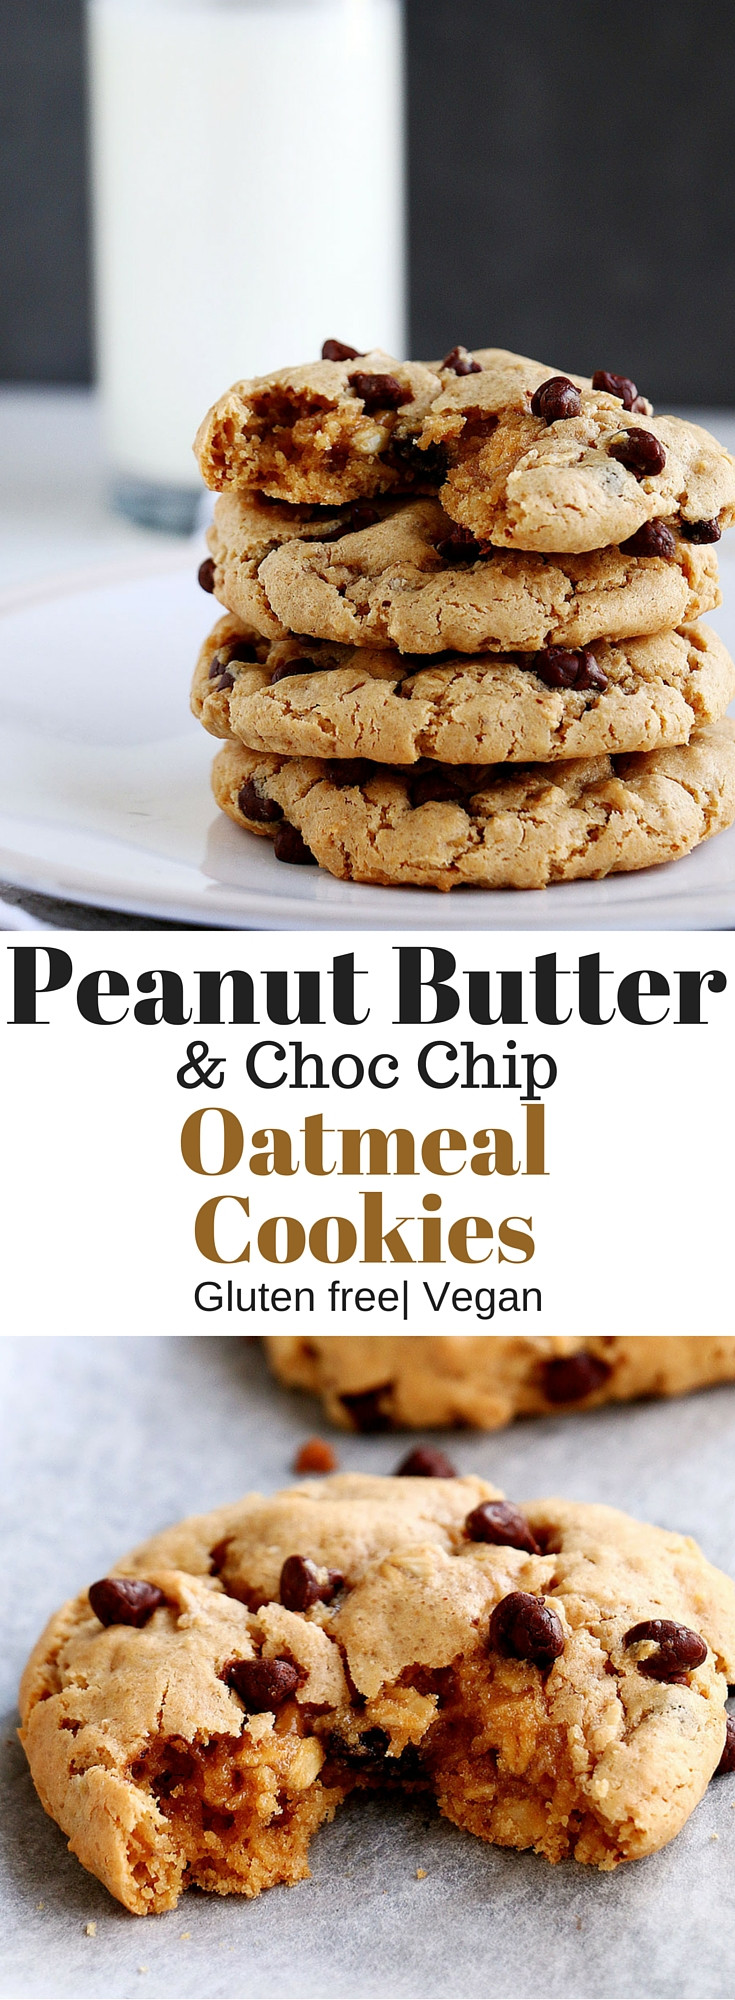 Healthy Peanut Butter Oatmeal Chocolate Chip Cookies  Peanut Butter & Choc Chip Oatmeal Cookies Baking Ginger